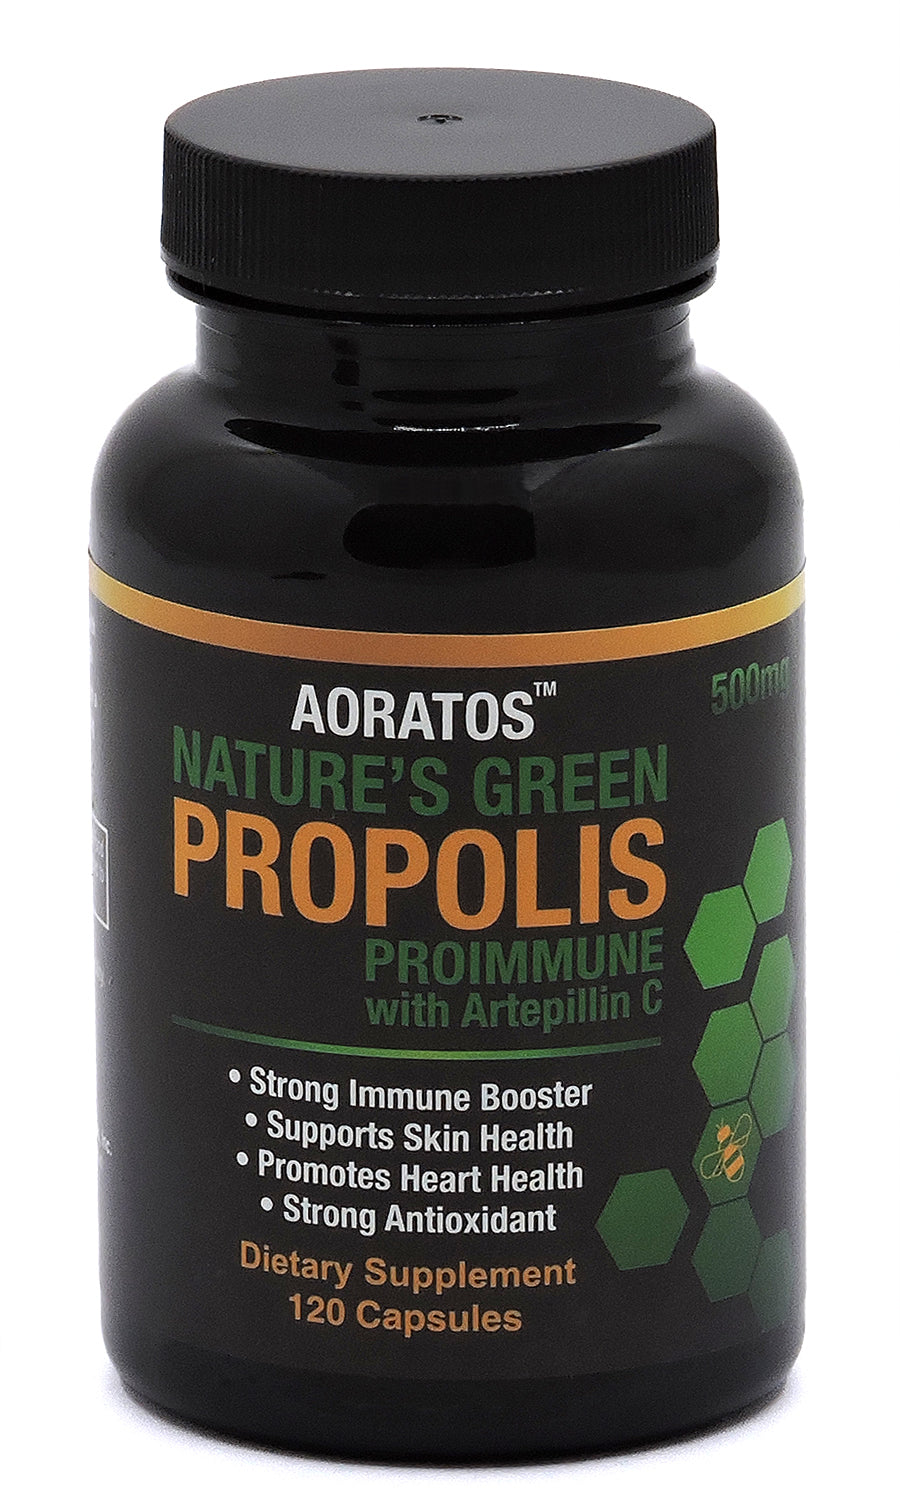 Aoratos Nature's Green Propolis Proimmune with Artepillin C 120 count 500mg Vegetable Capsules